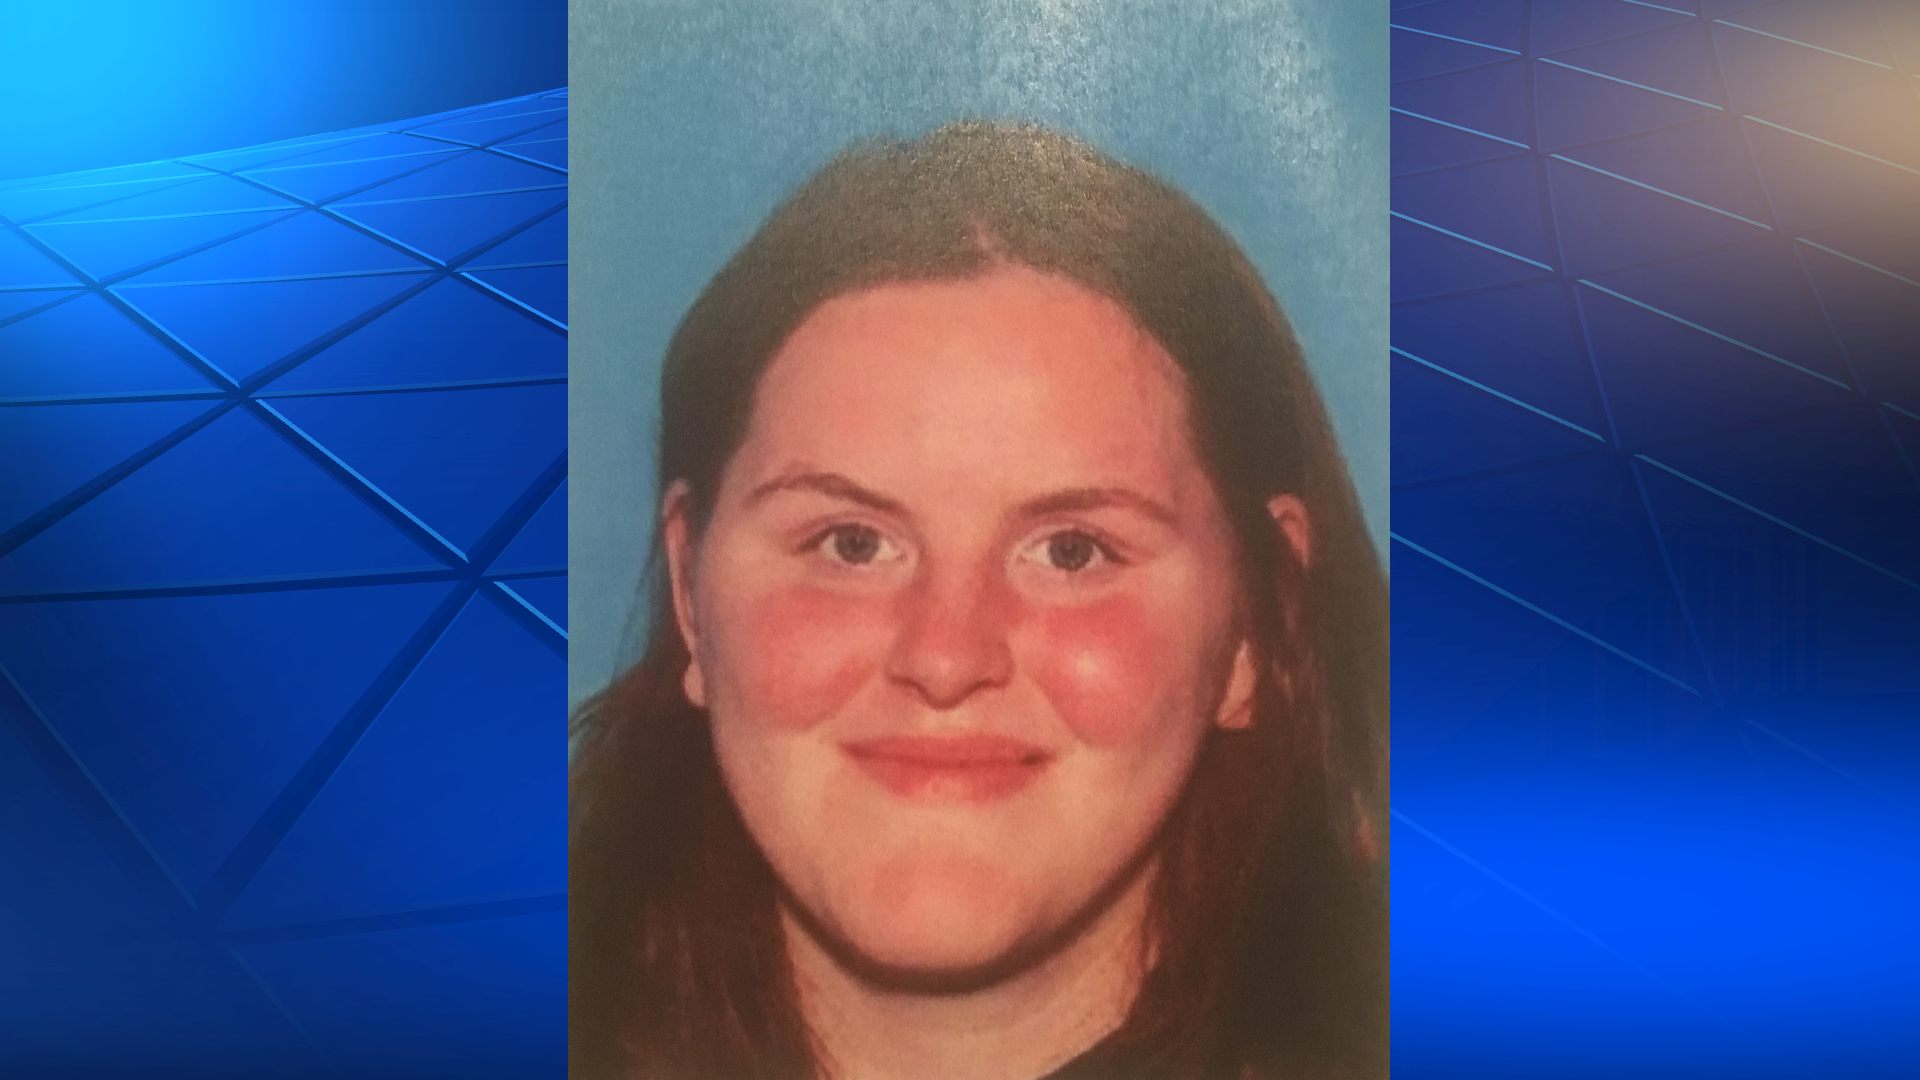 Pennsylvania mom charged after newborn found dead under porch